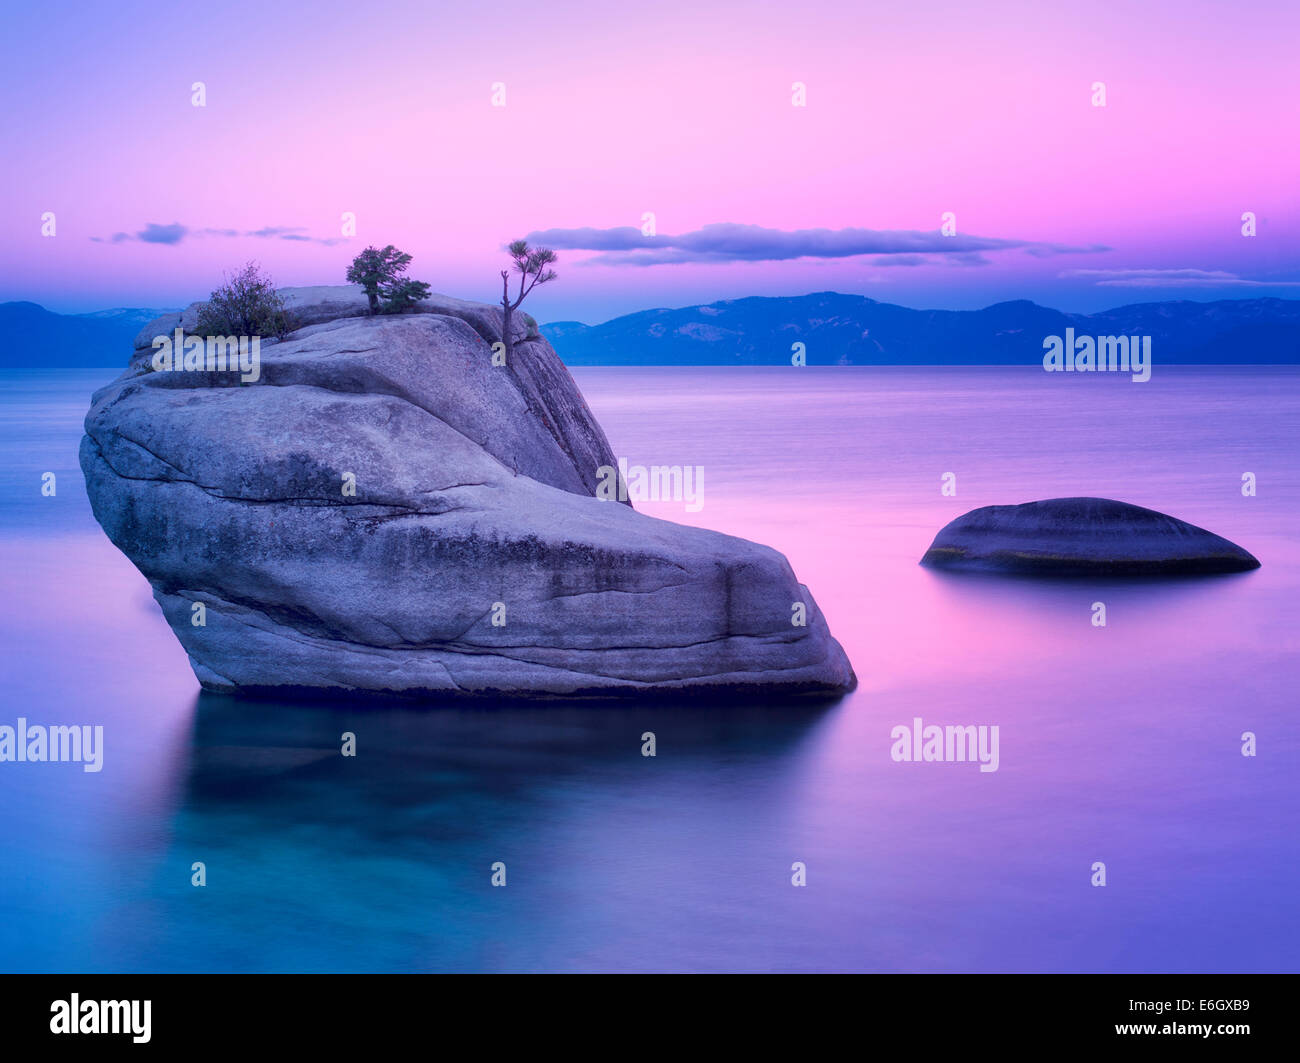 Bonsai Rock al amanecer. Lake Tahoe, Nevada Imagen De Stock